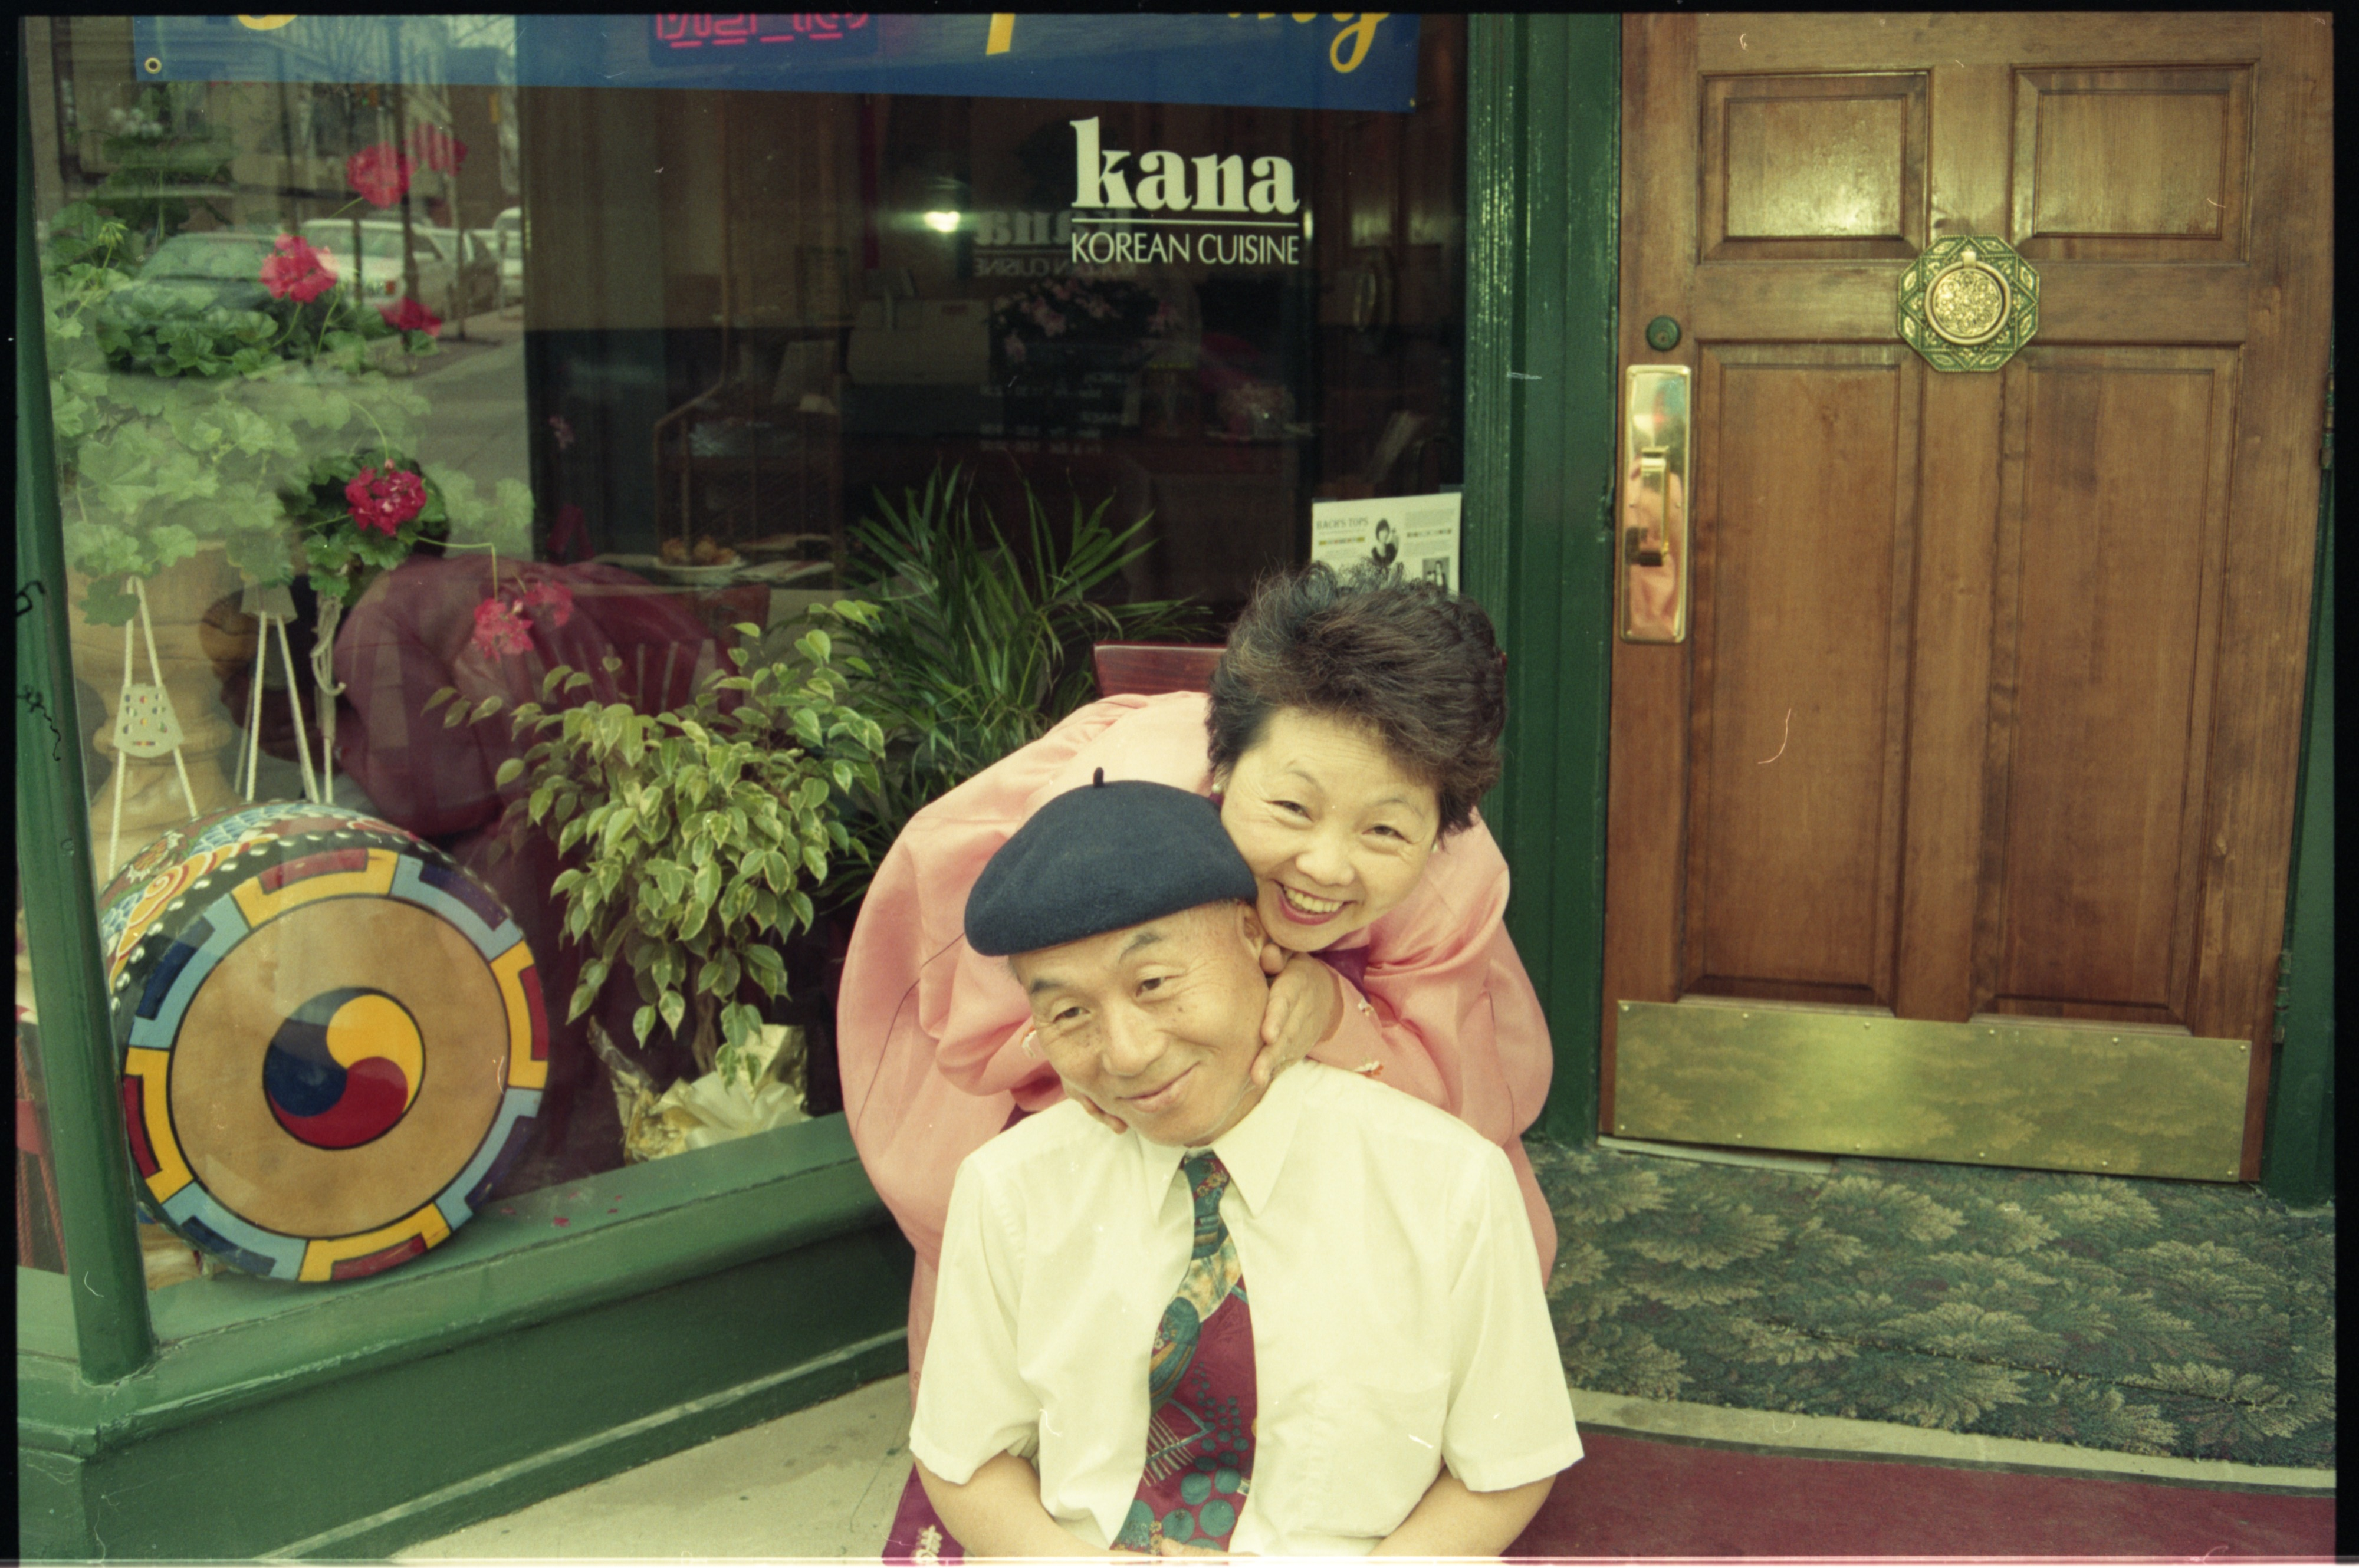 Kun & Byung Ko At Kana's New Location, May 1995 image